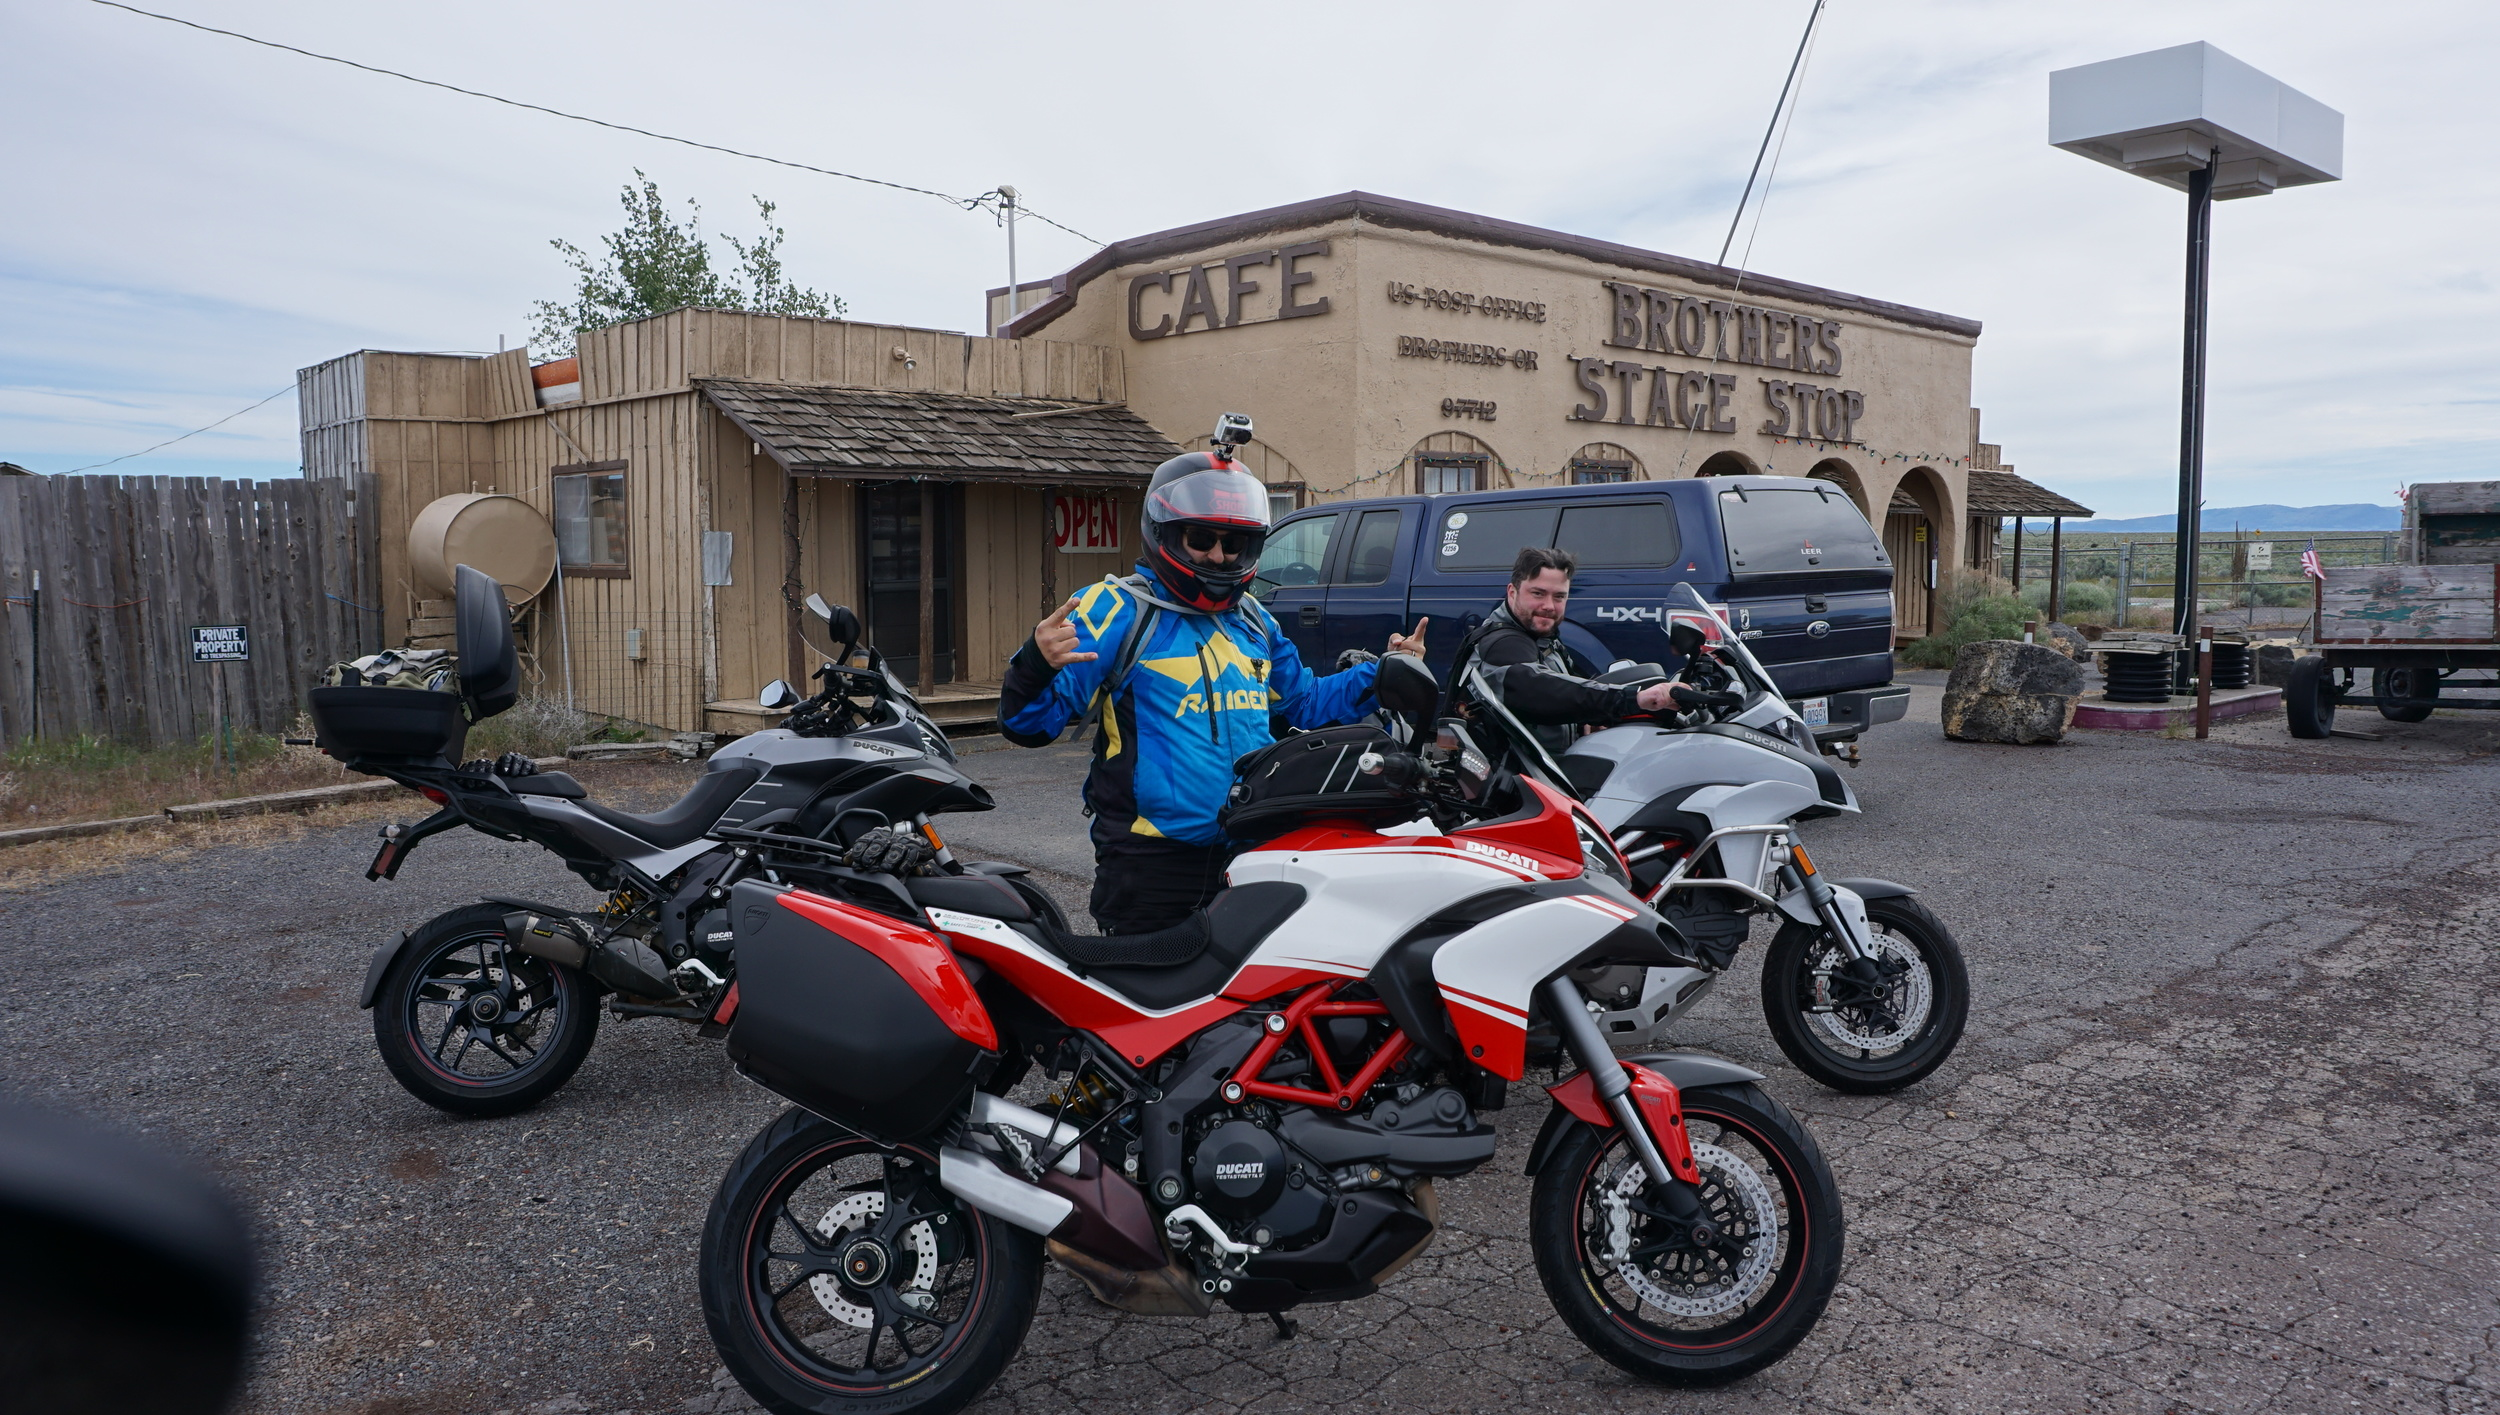 The three steeds, all Ducatis, from left to right: 2013 Multistrada 1200GT, 2013 Multistrada 1200 Pike's Peak and 2015 Multistrada 1200 ST